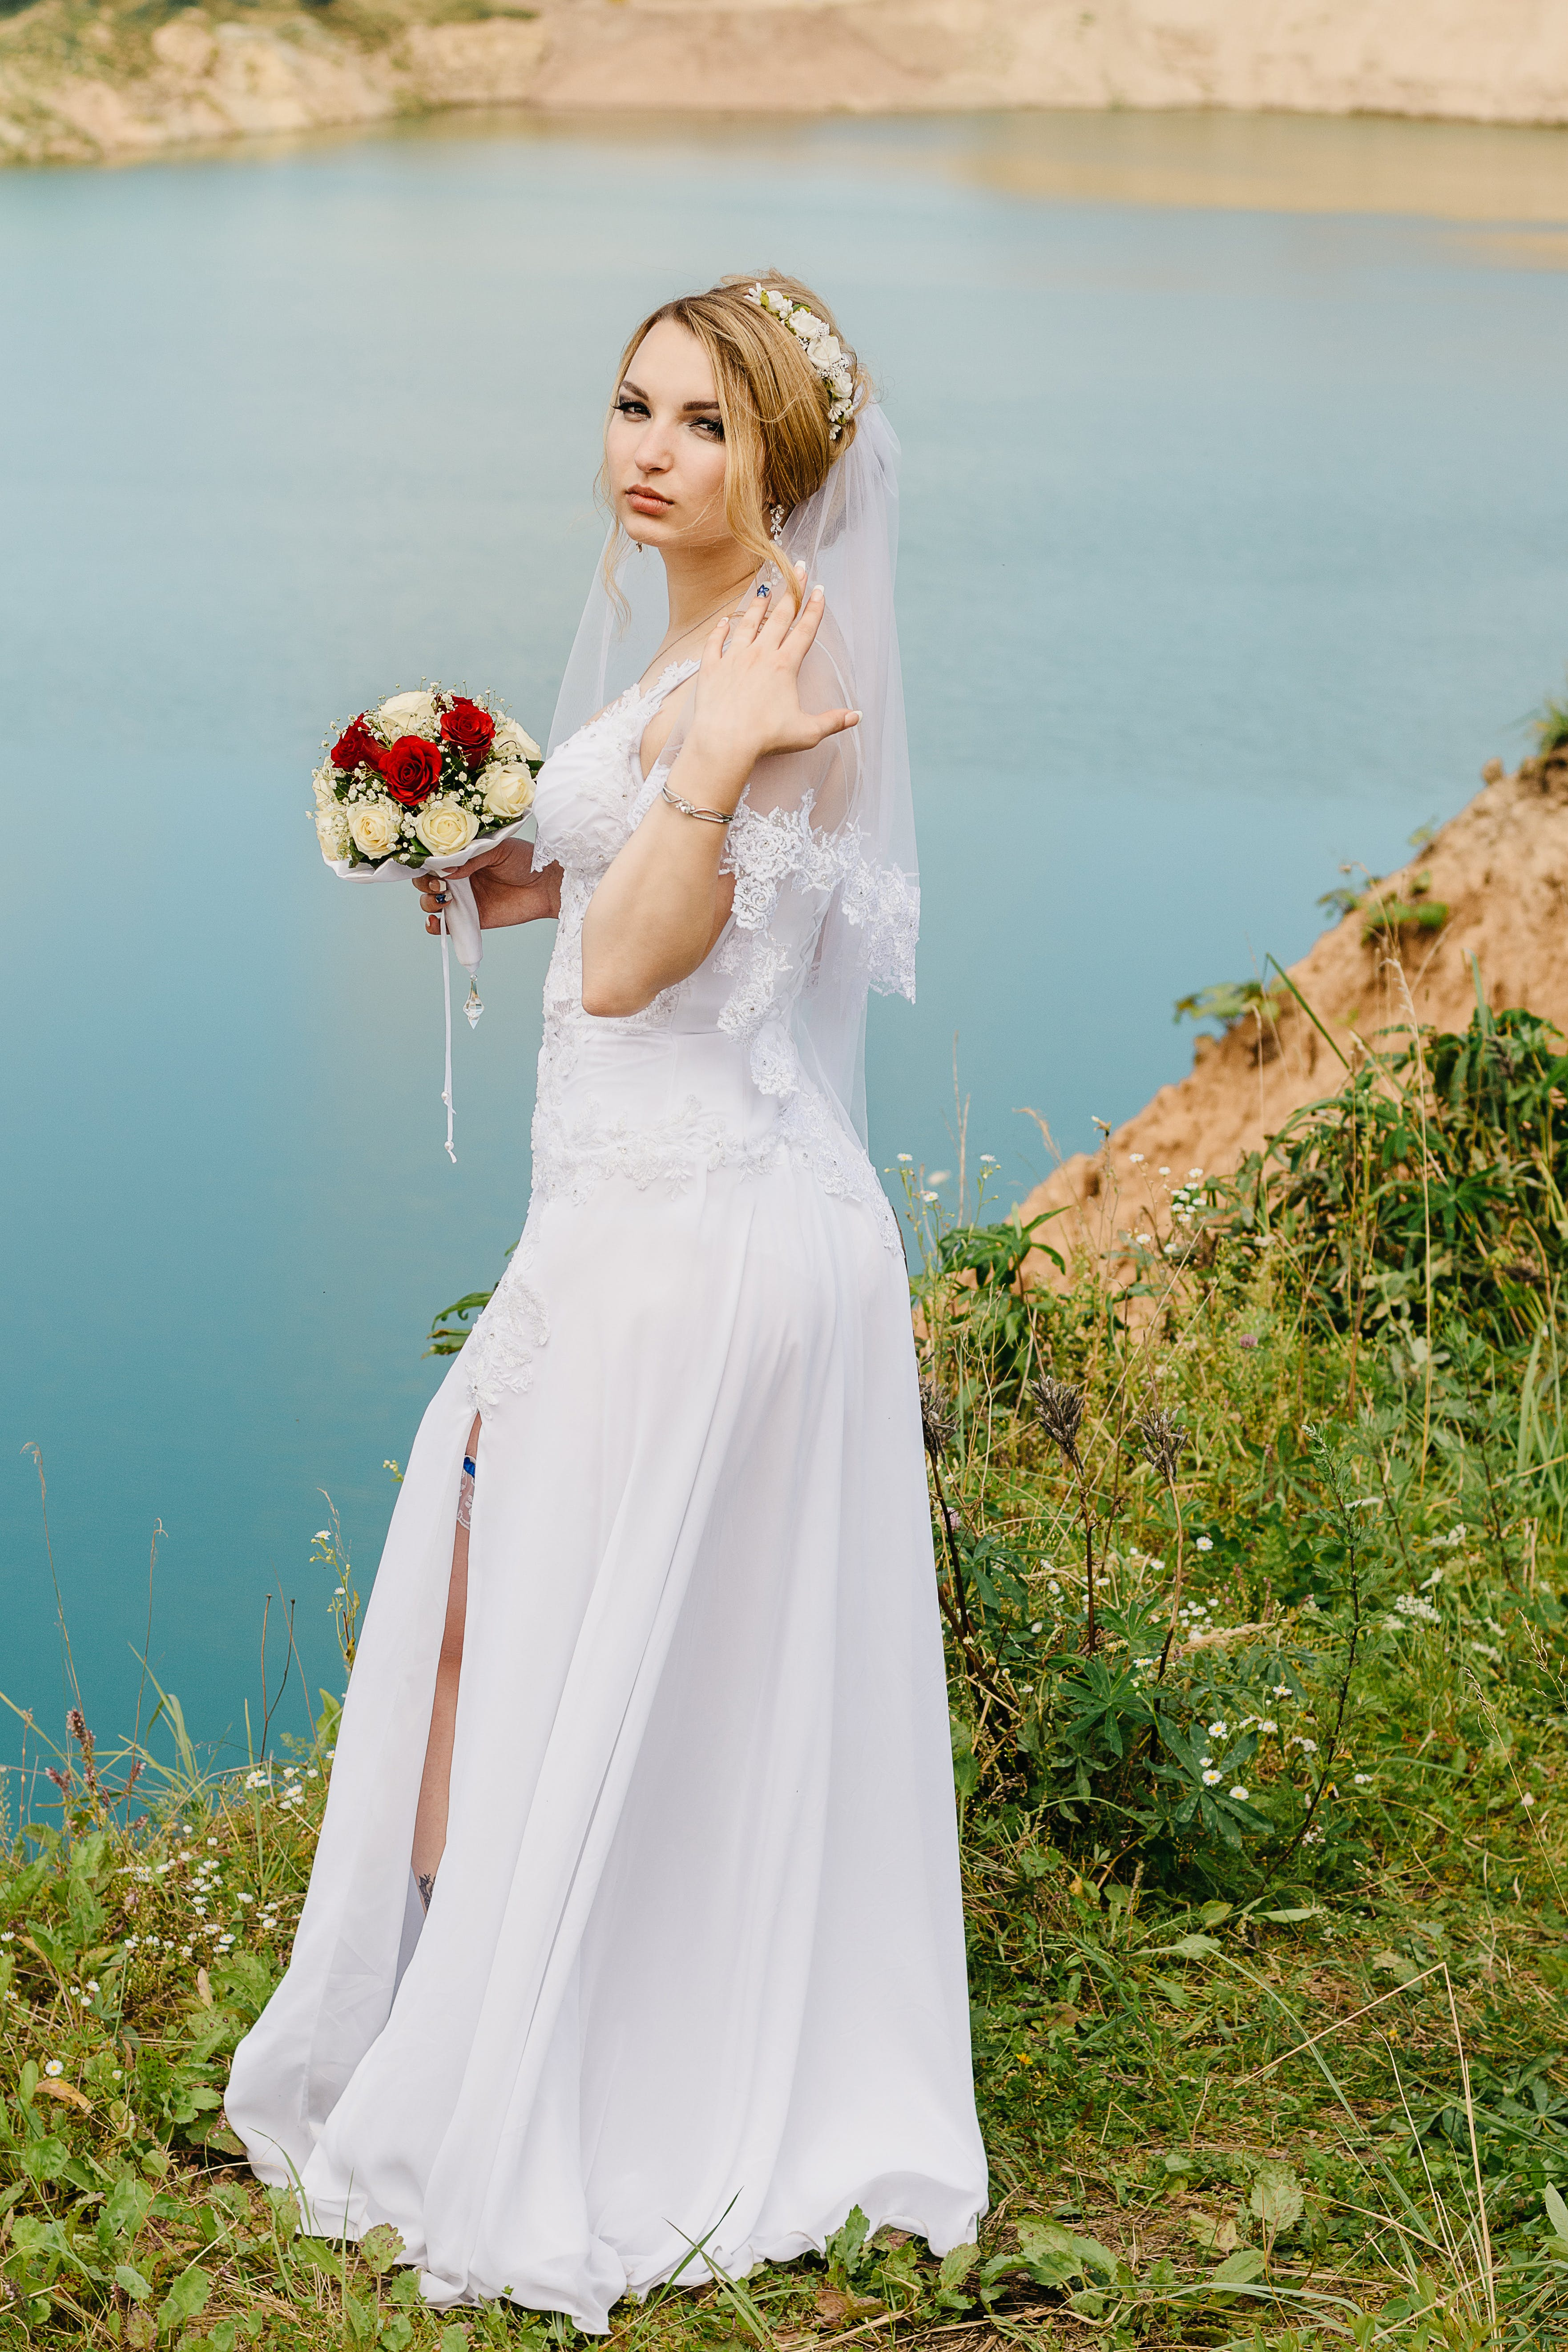 Woman Wearing White Wedding Gown While Standing on Cliff Near River